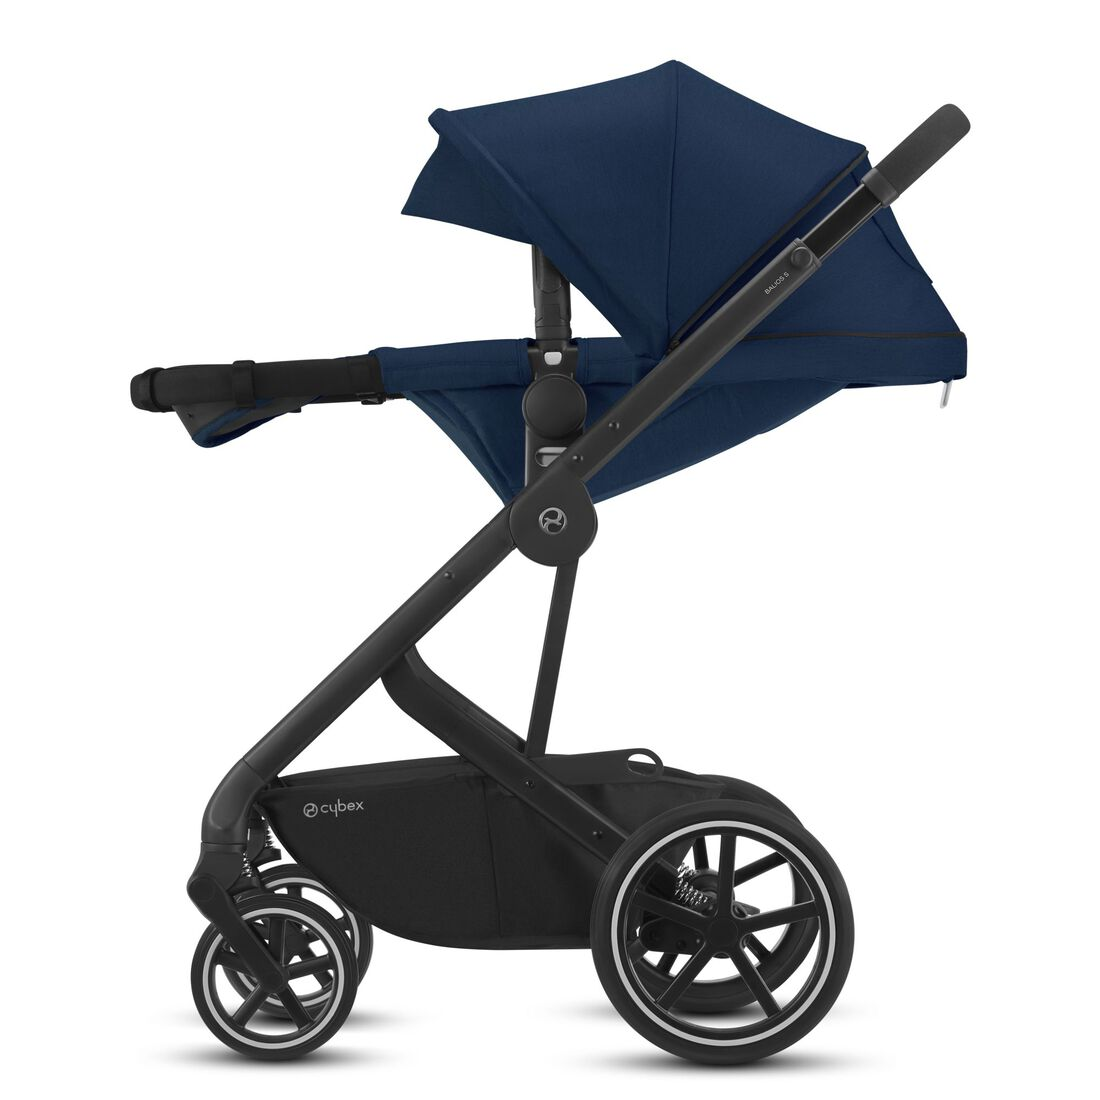 CYBEX Balios S 2-in-1 - Navy Blue in Navy Blue large